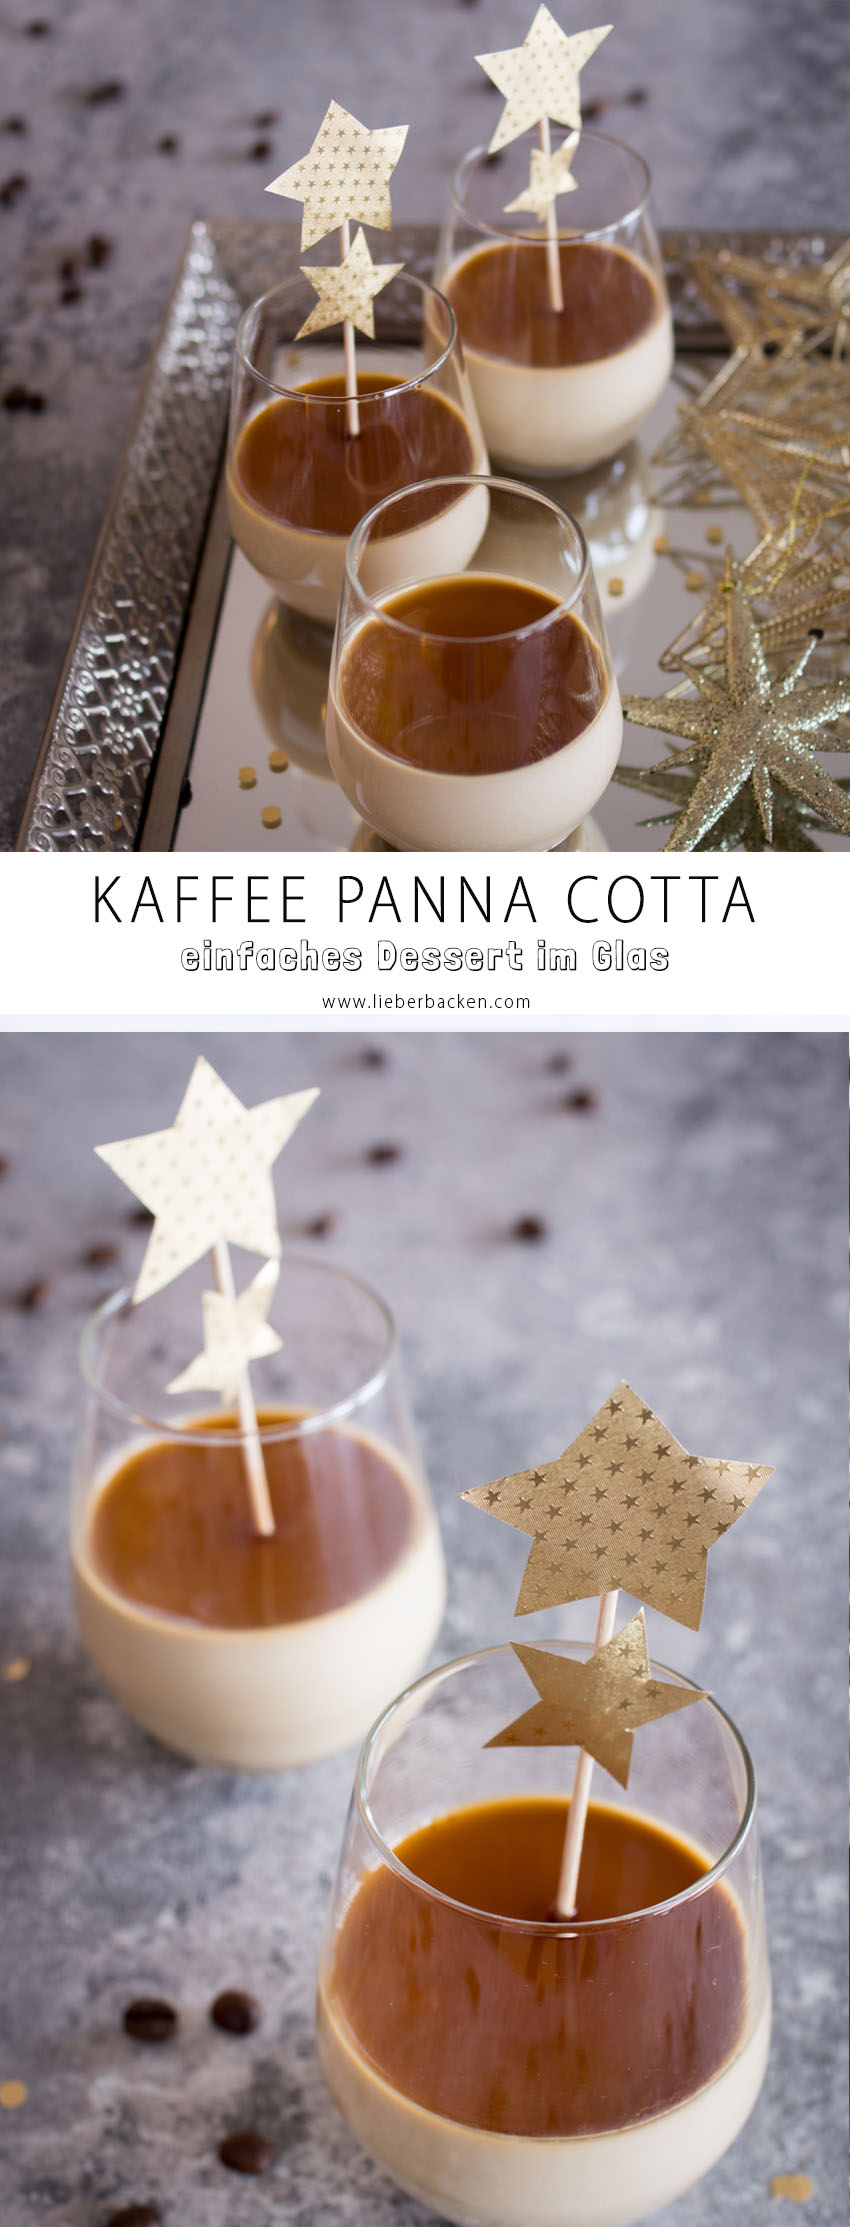 dessert im glas kaffee panna cotta in kooperation mit. Black Bedroom Furniture Sets. Home Design Ideas